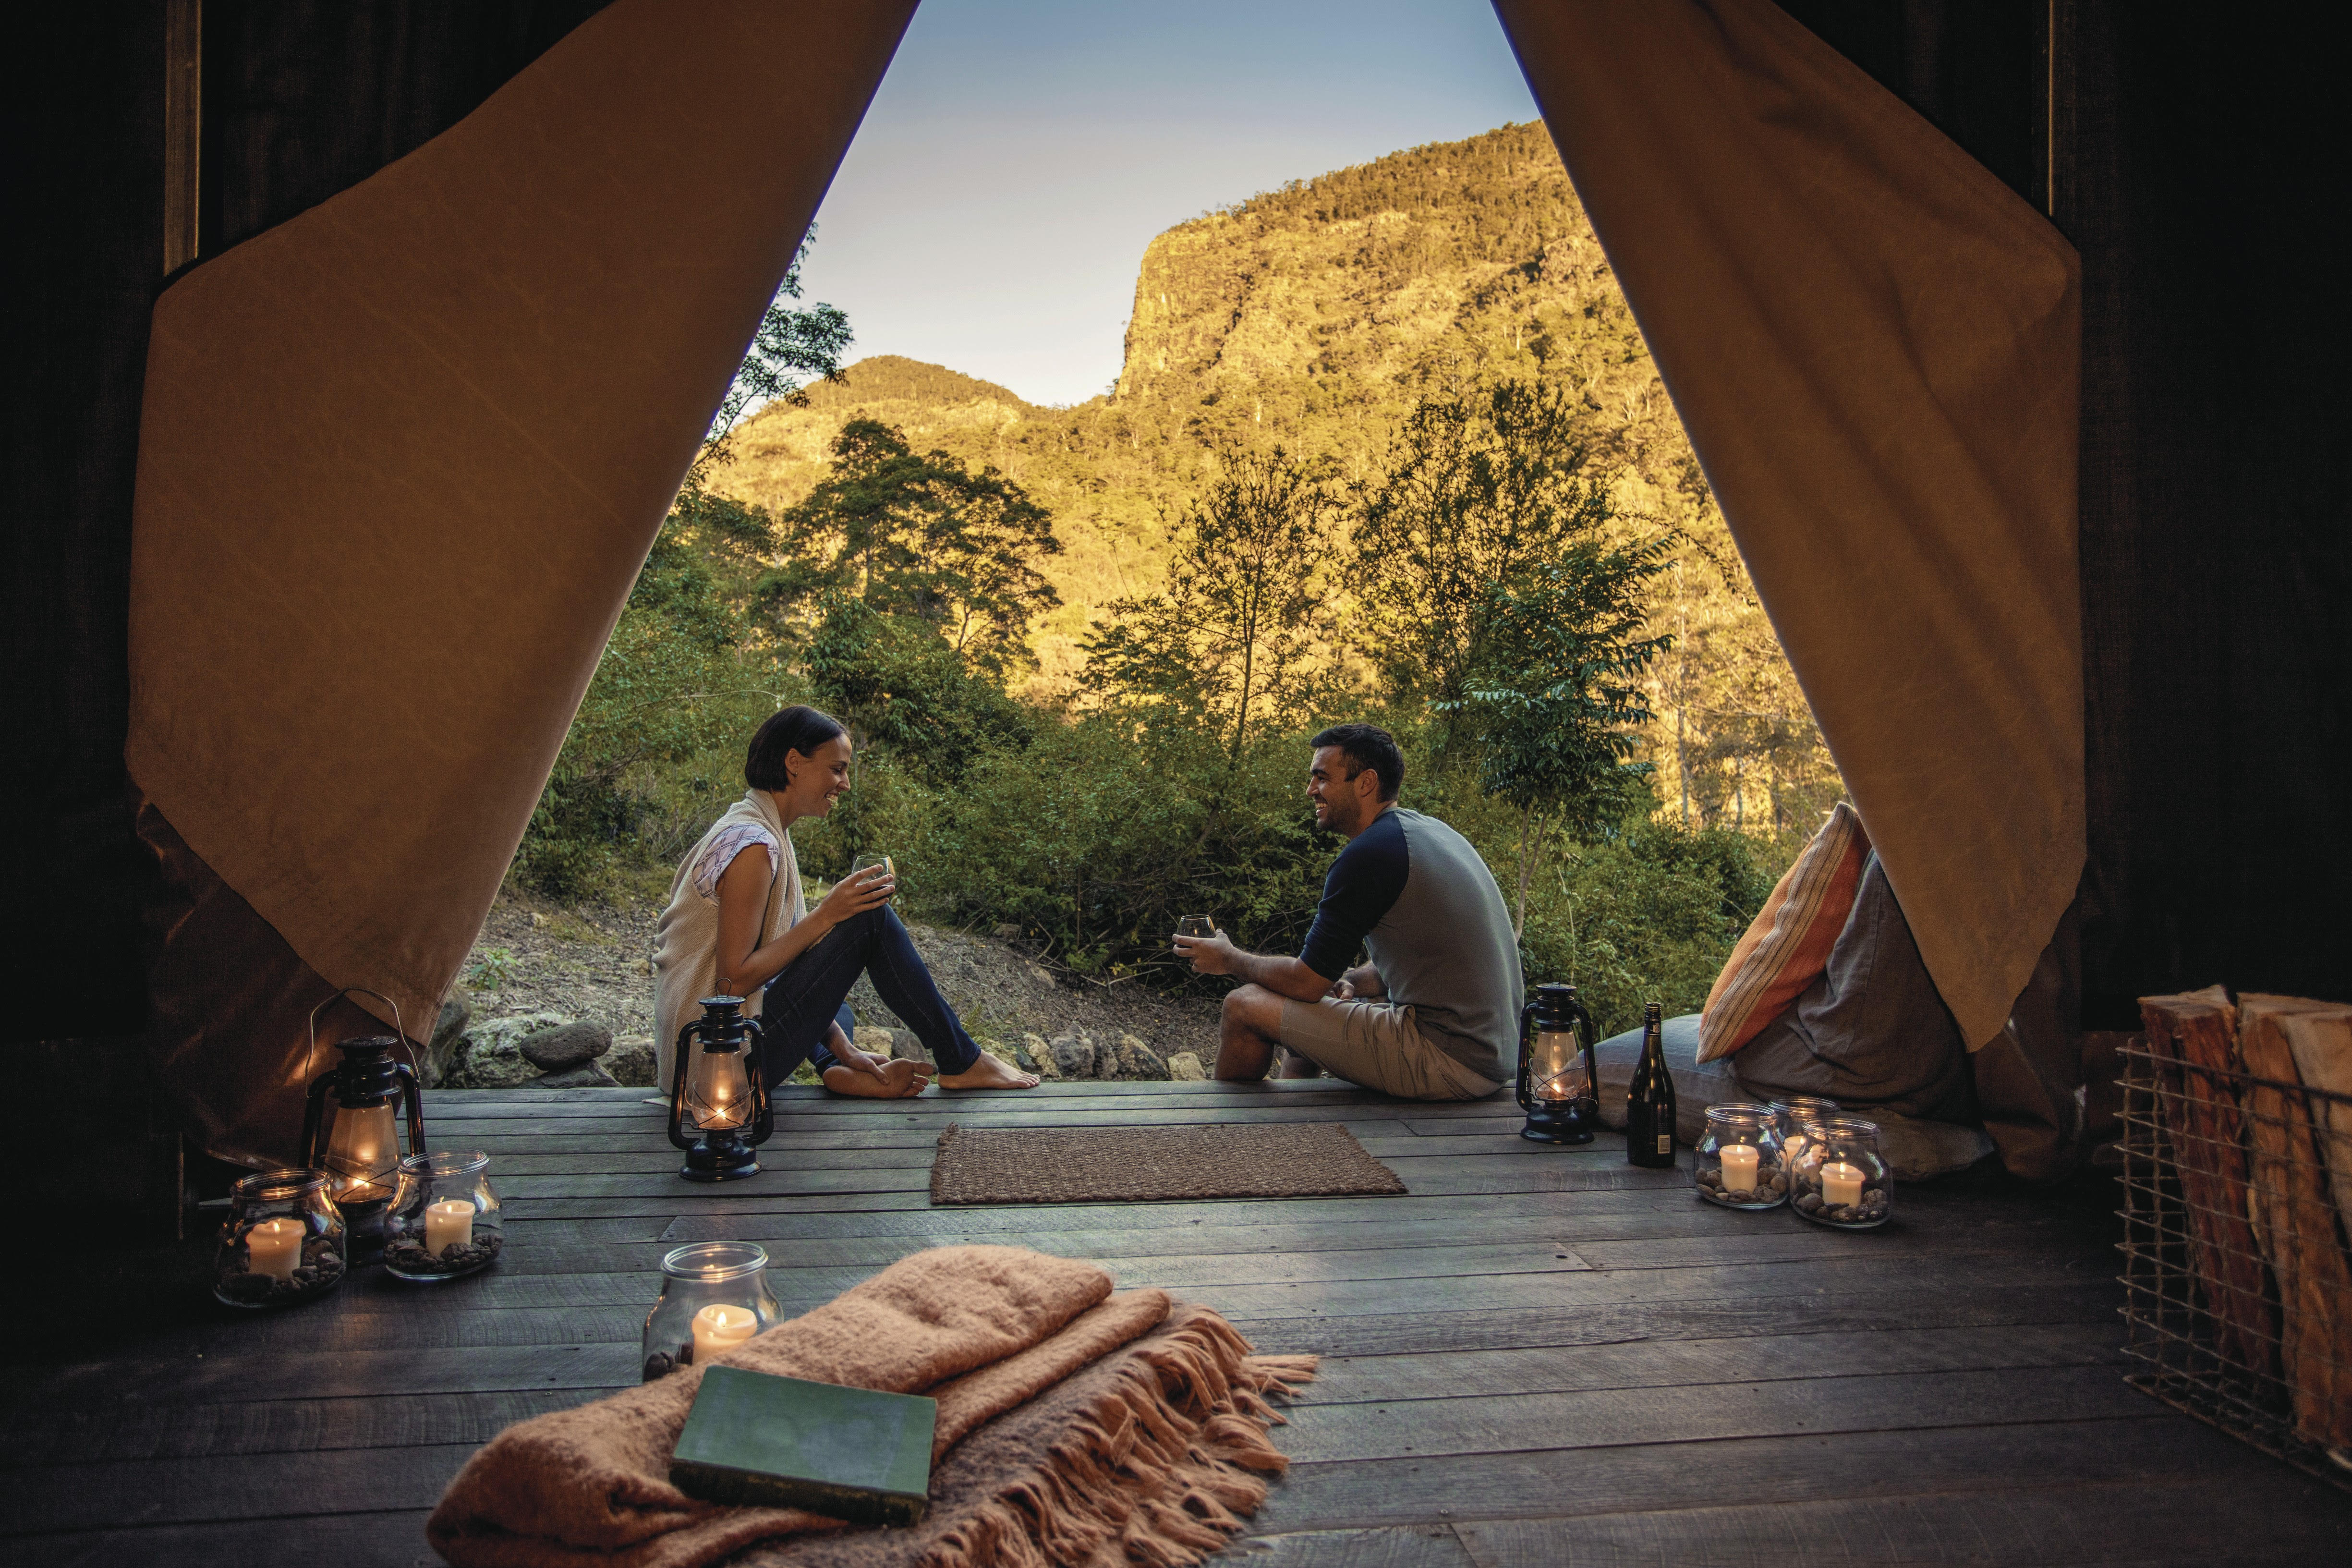 queensland-glamping-tent-view